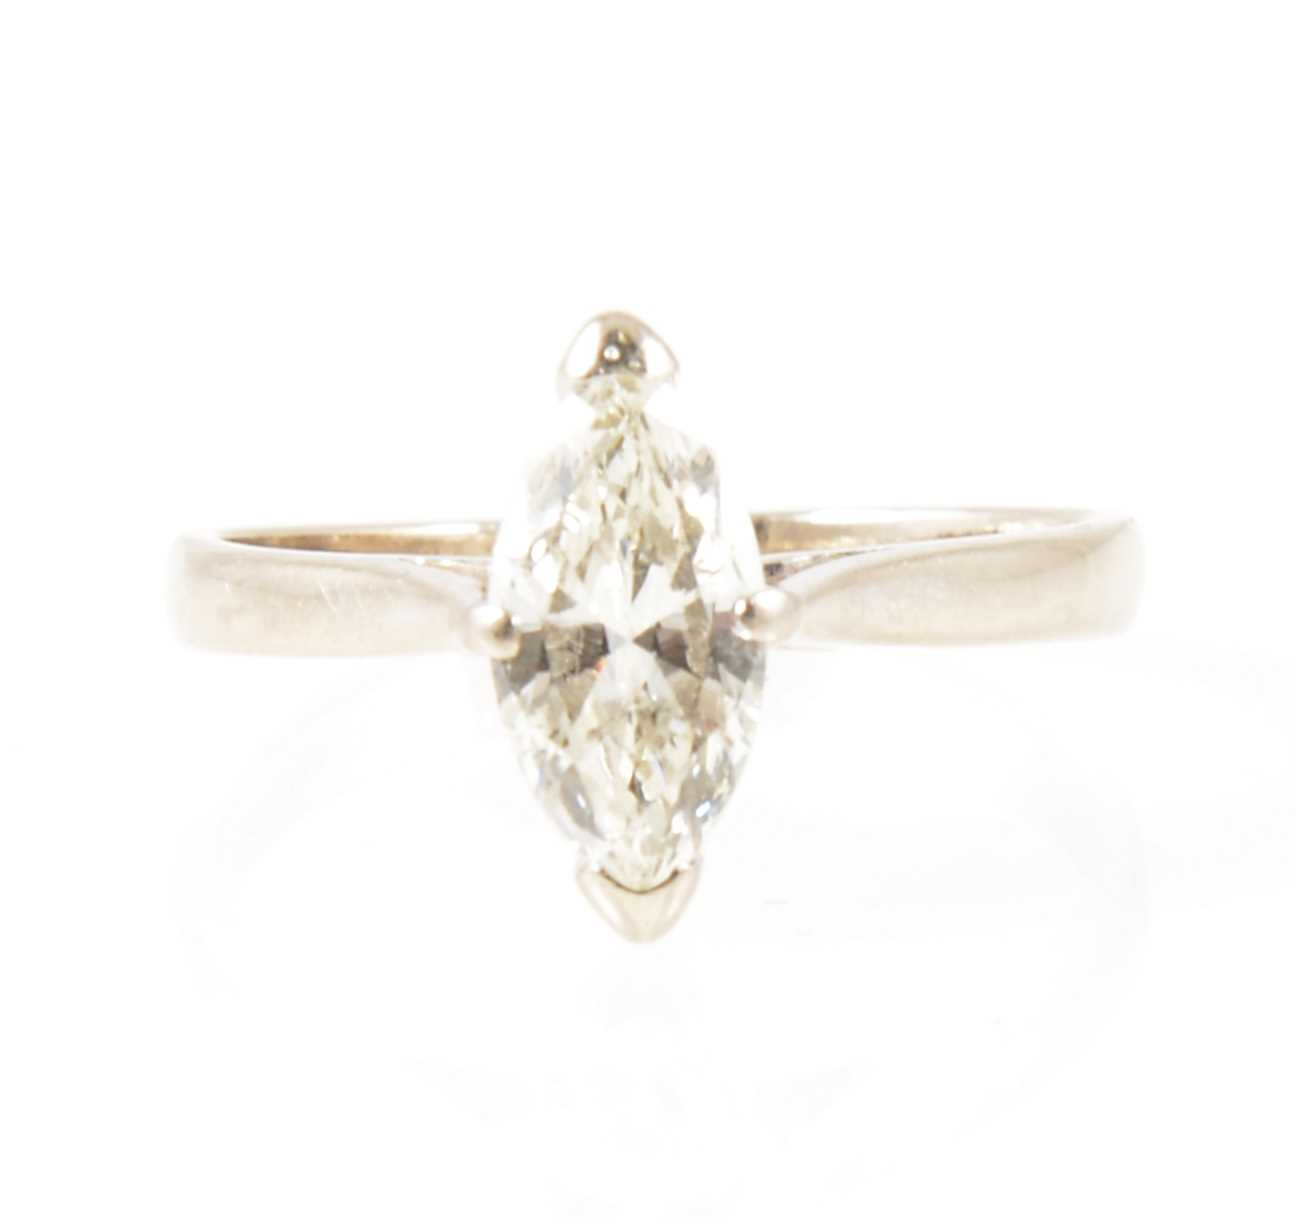 Lot 5-A diamond solitaire ring